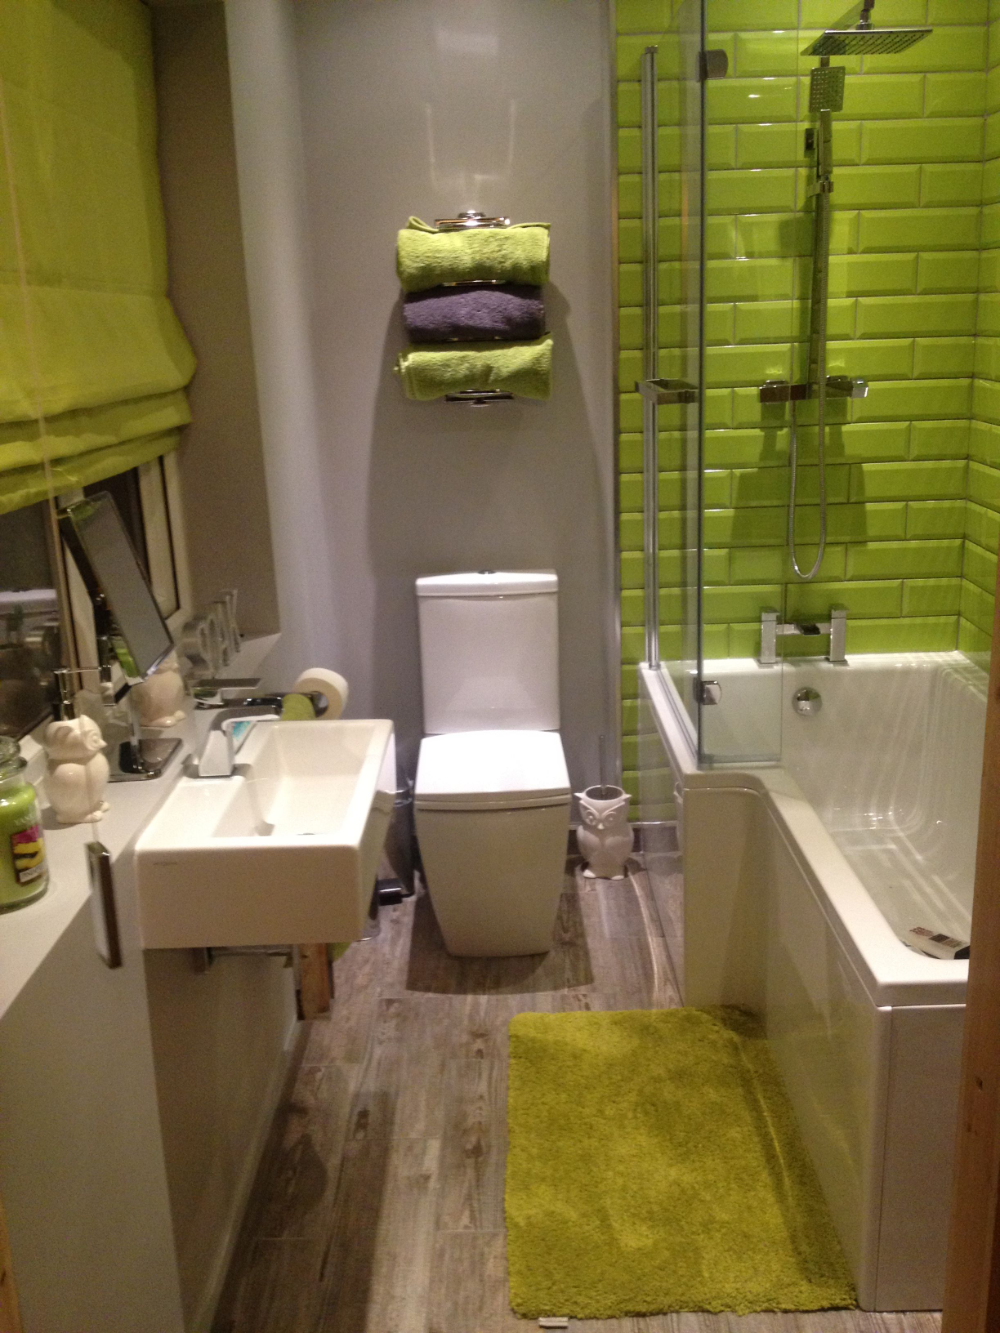 Lime Green And Grey Bathroom Decor In 2020 Lime Green Bathrooms Gray Bathroom Decor Green Bathroom